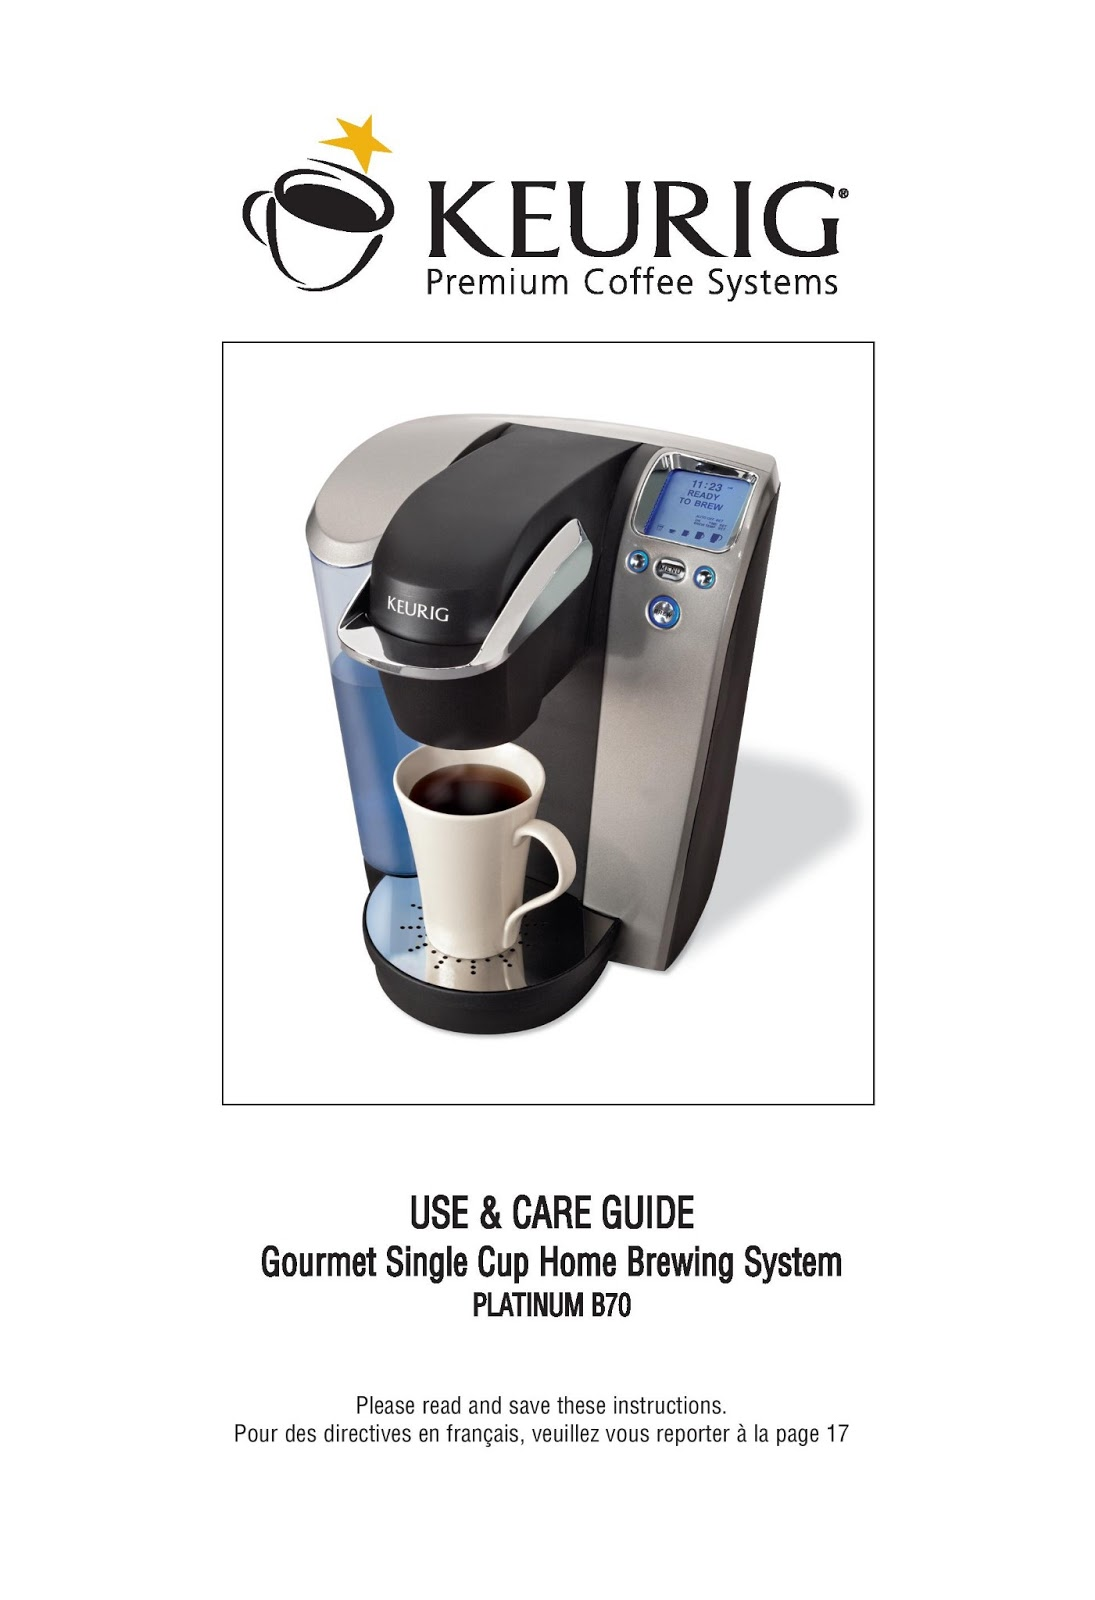 Keurig Coffee Maker Problems No Water : March 2013 Keurig B70 Platinum Brewing System